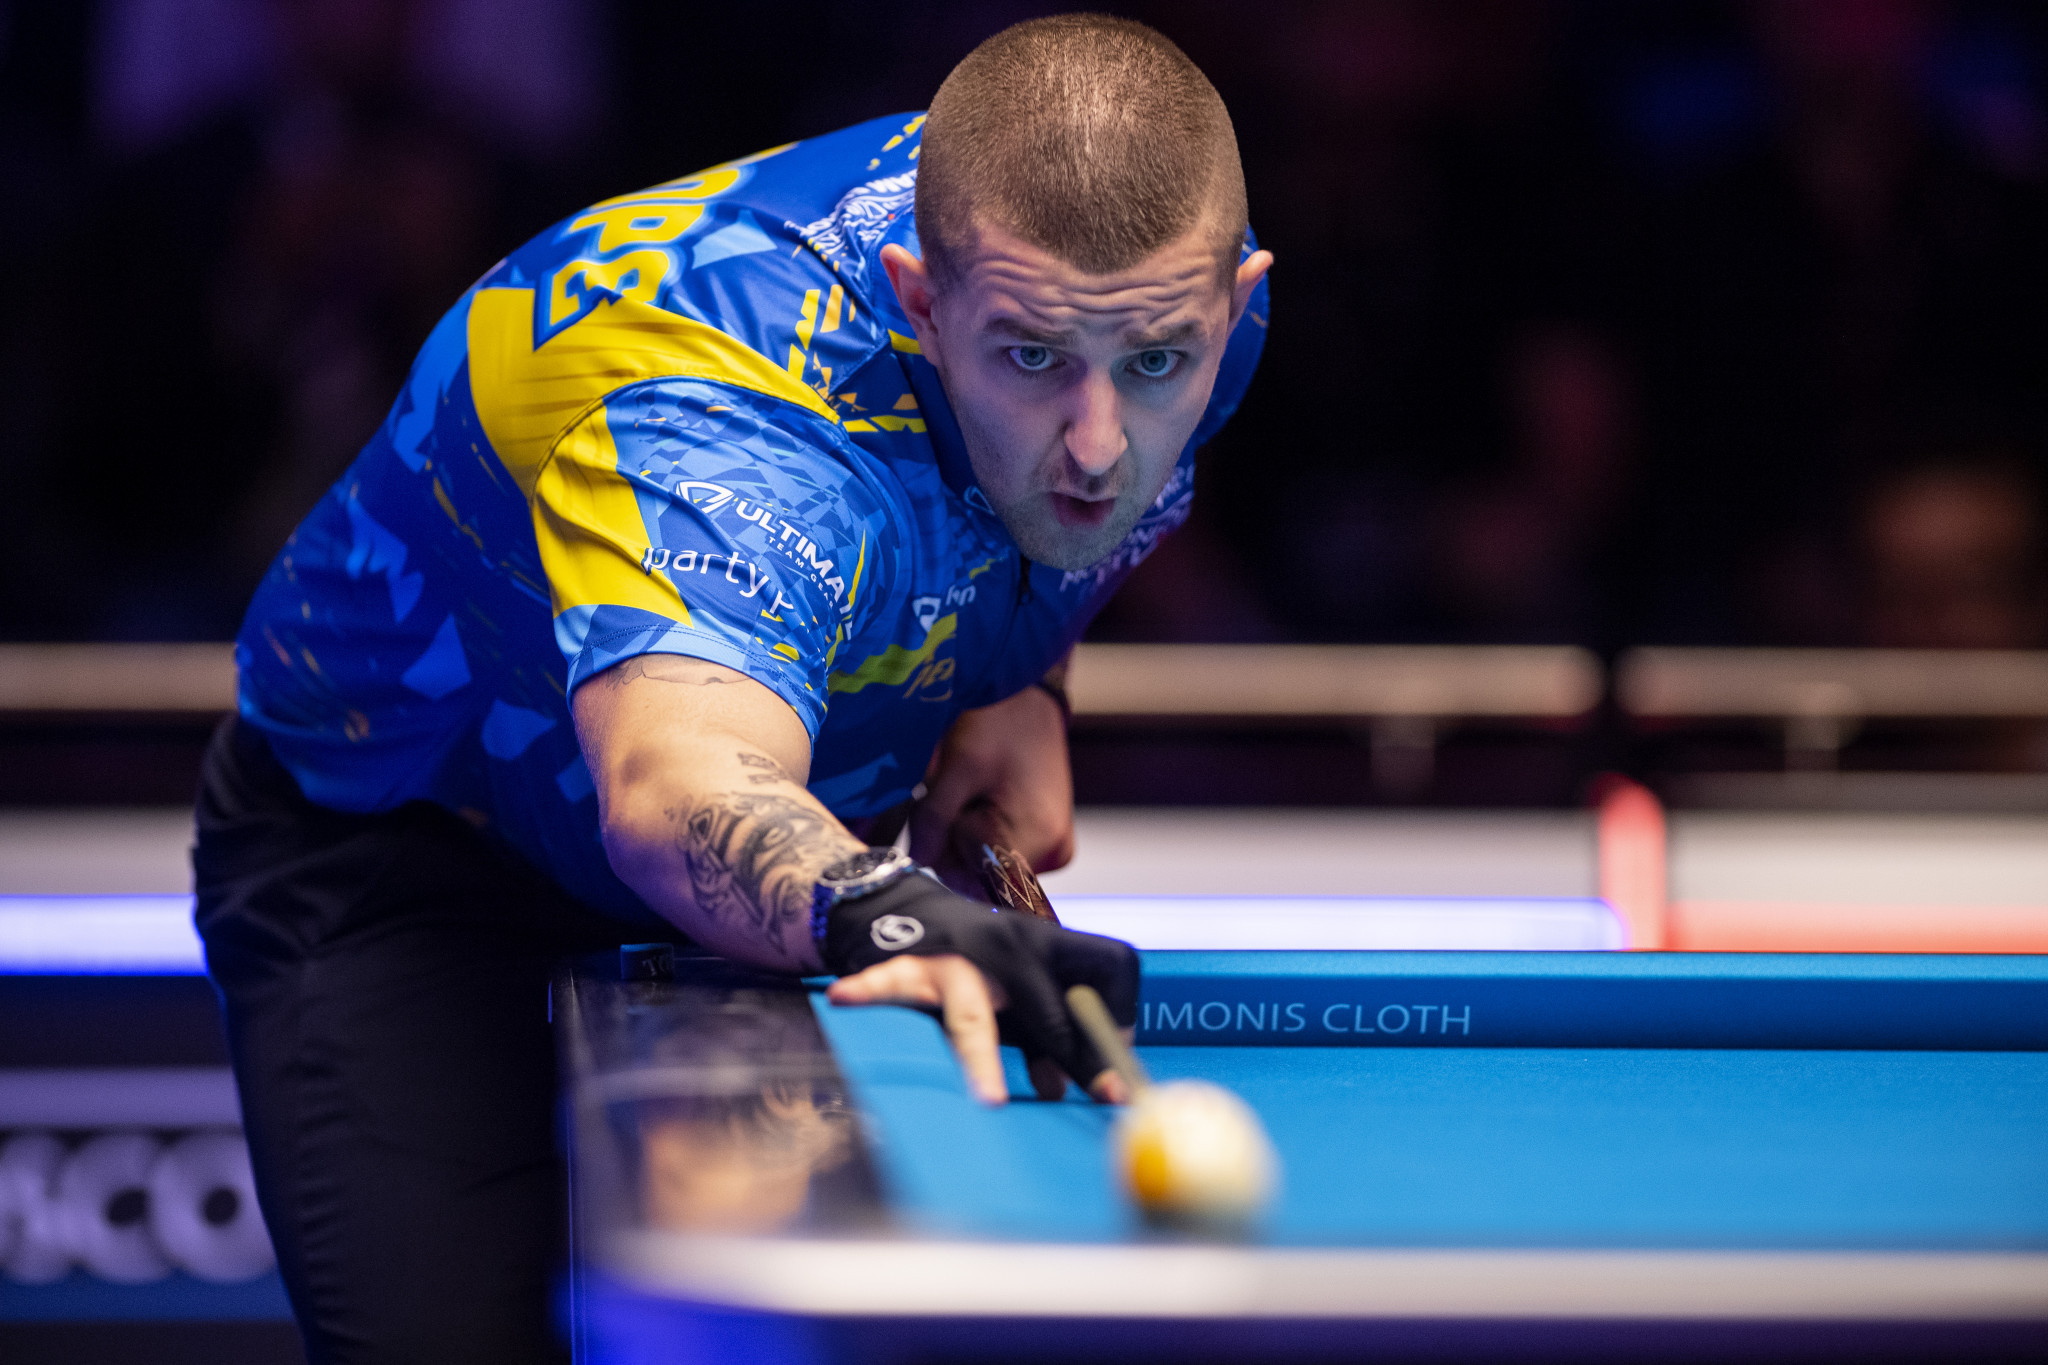 Scottish pool player Jayson Shaw named World Games Athlete of the Month for December